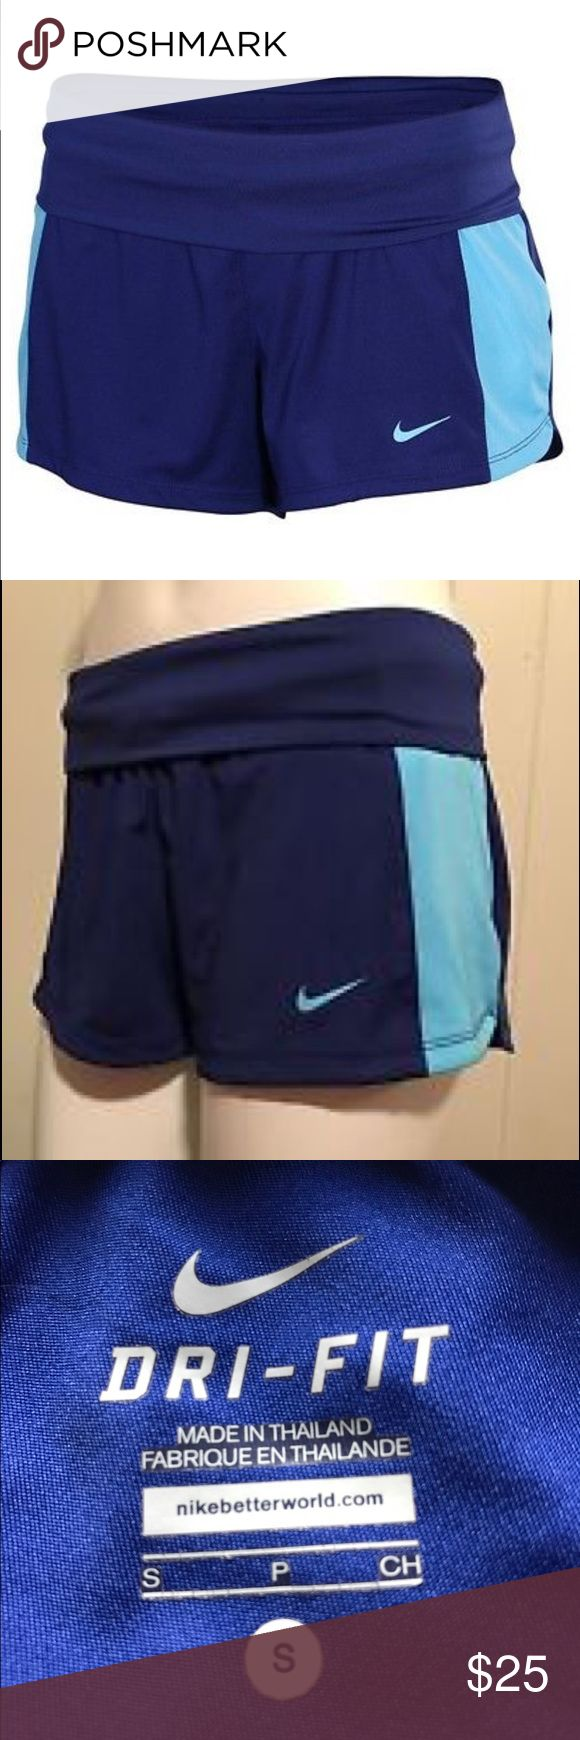 Nike Dri-Fit women's training shorts Blue shorts, brand new conditions, manufactures tags still attached. Nike Shorts